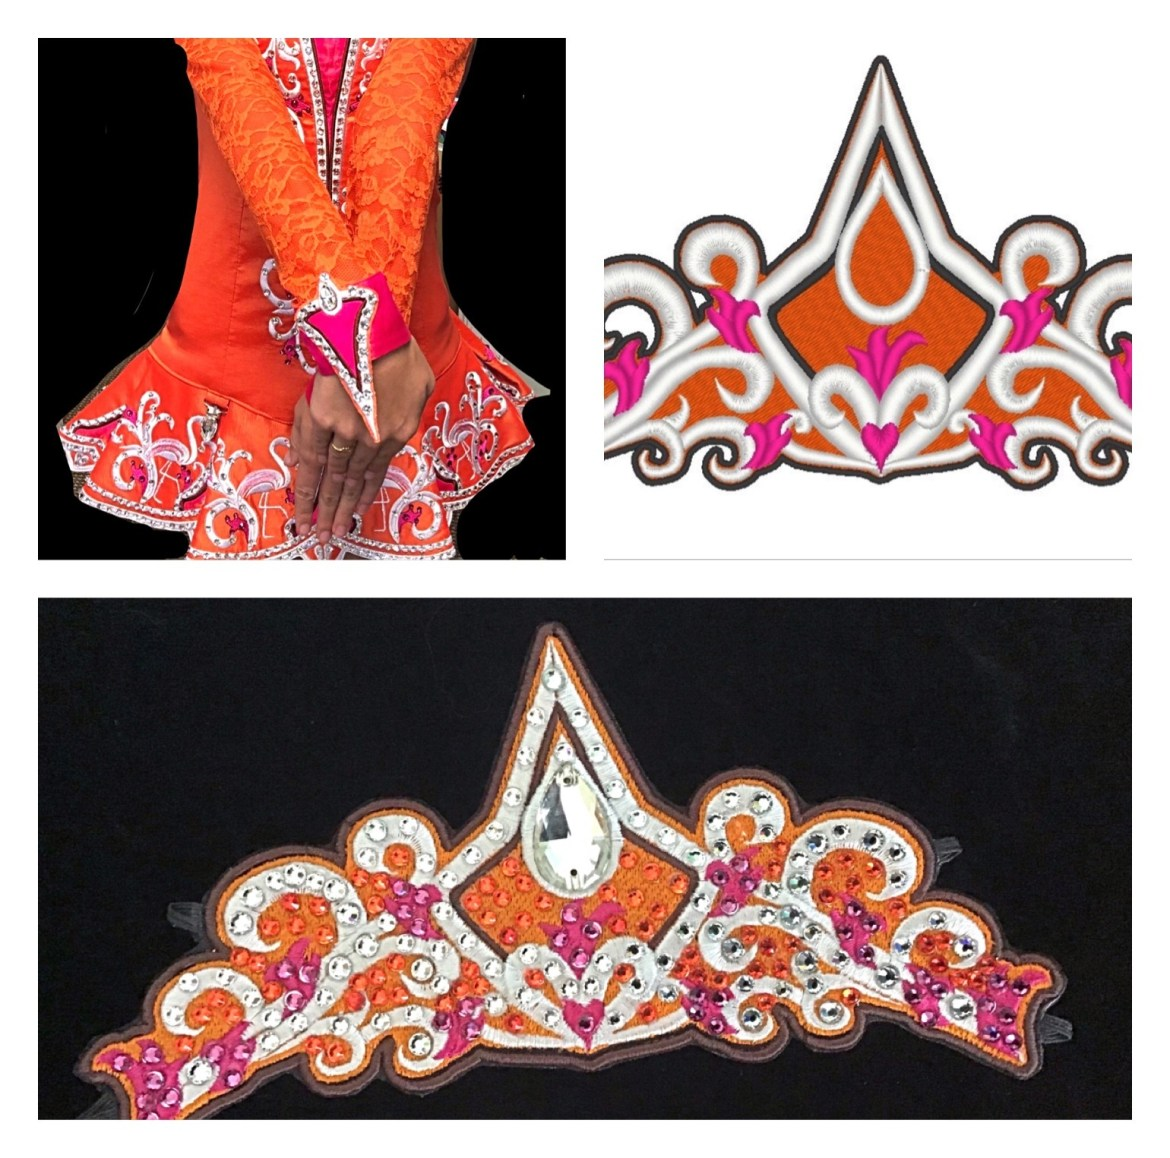 Custom designed  tiara to match your solo costume. $20 deposit for the design required! 00105